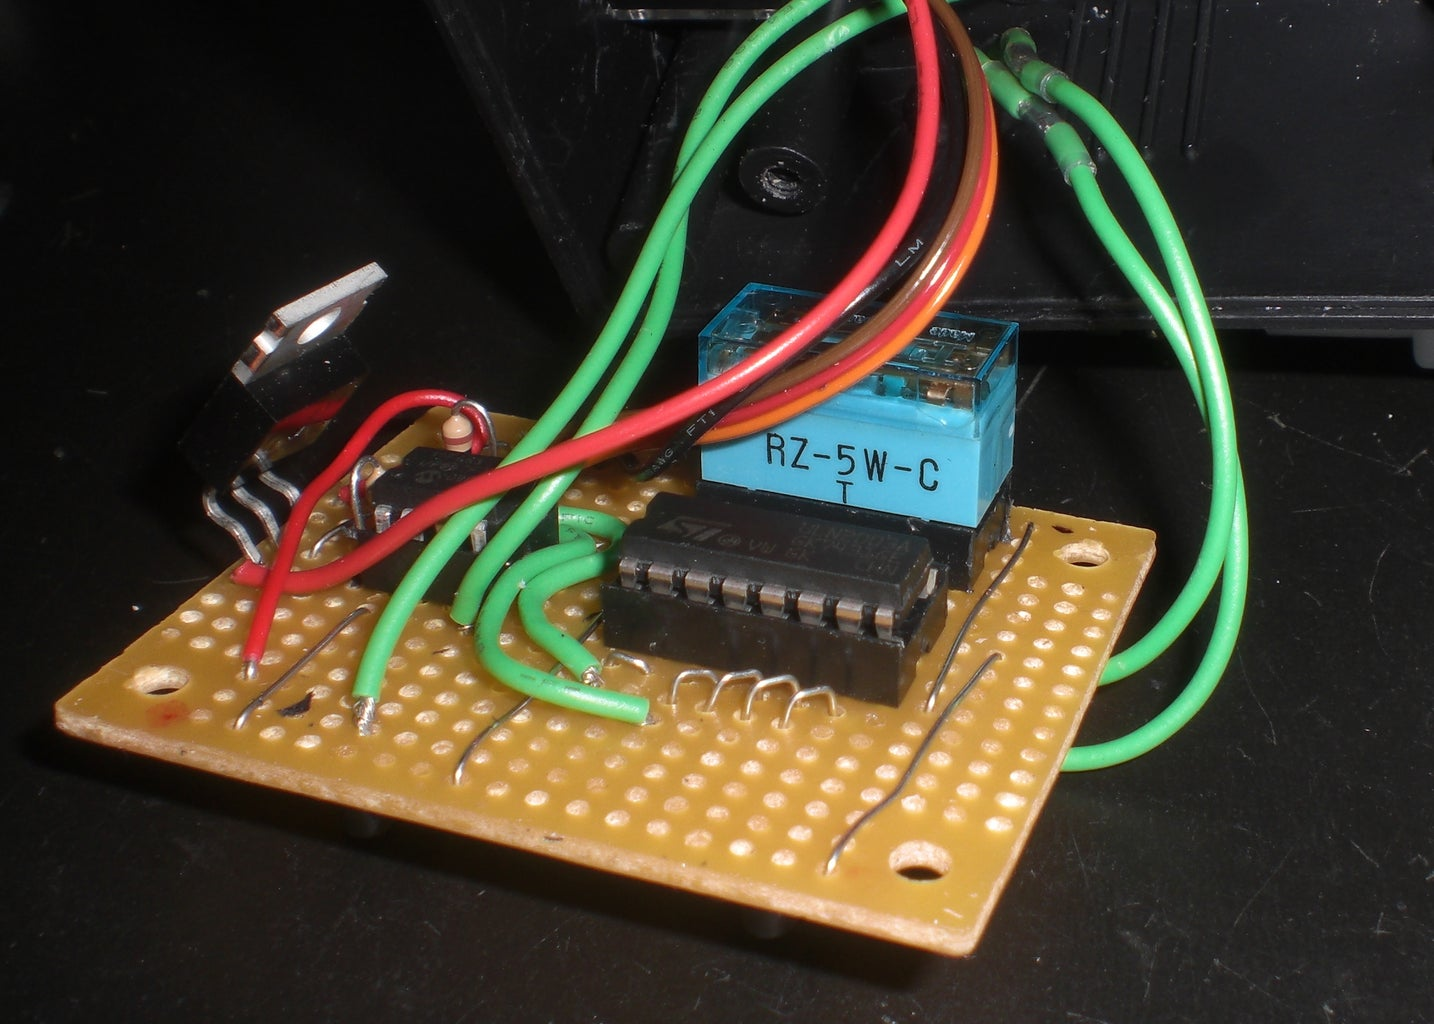 Build the Circuit on the Proto Board